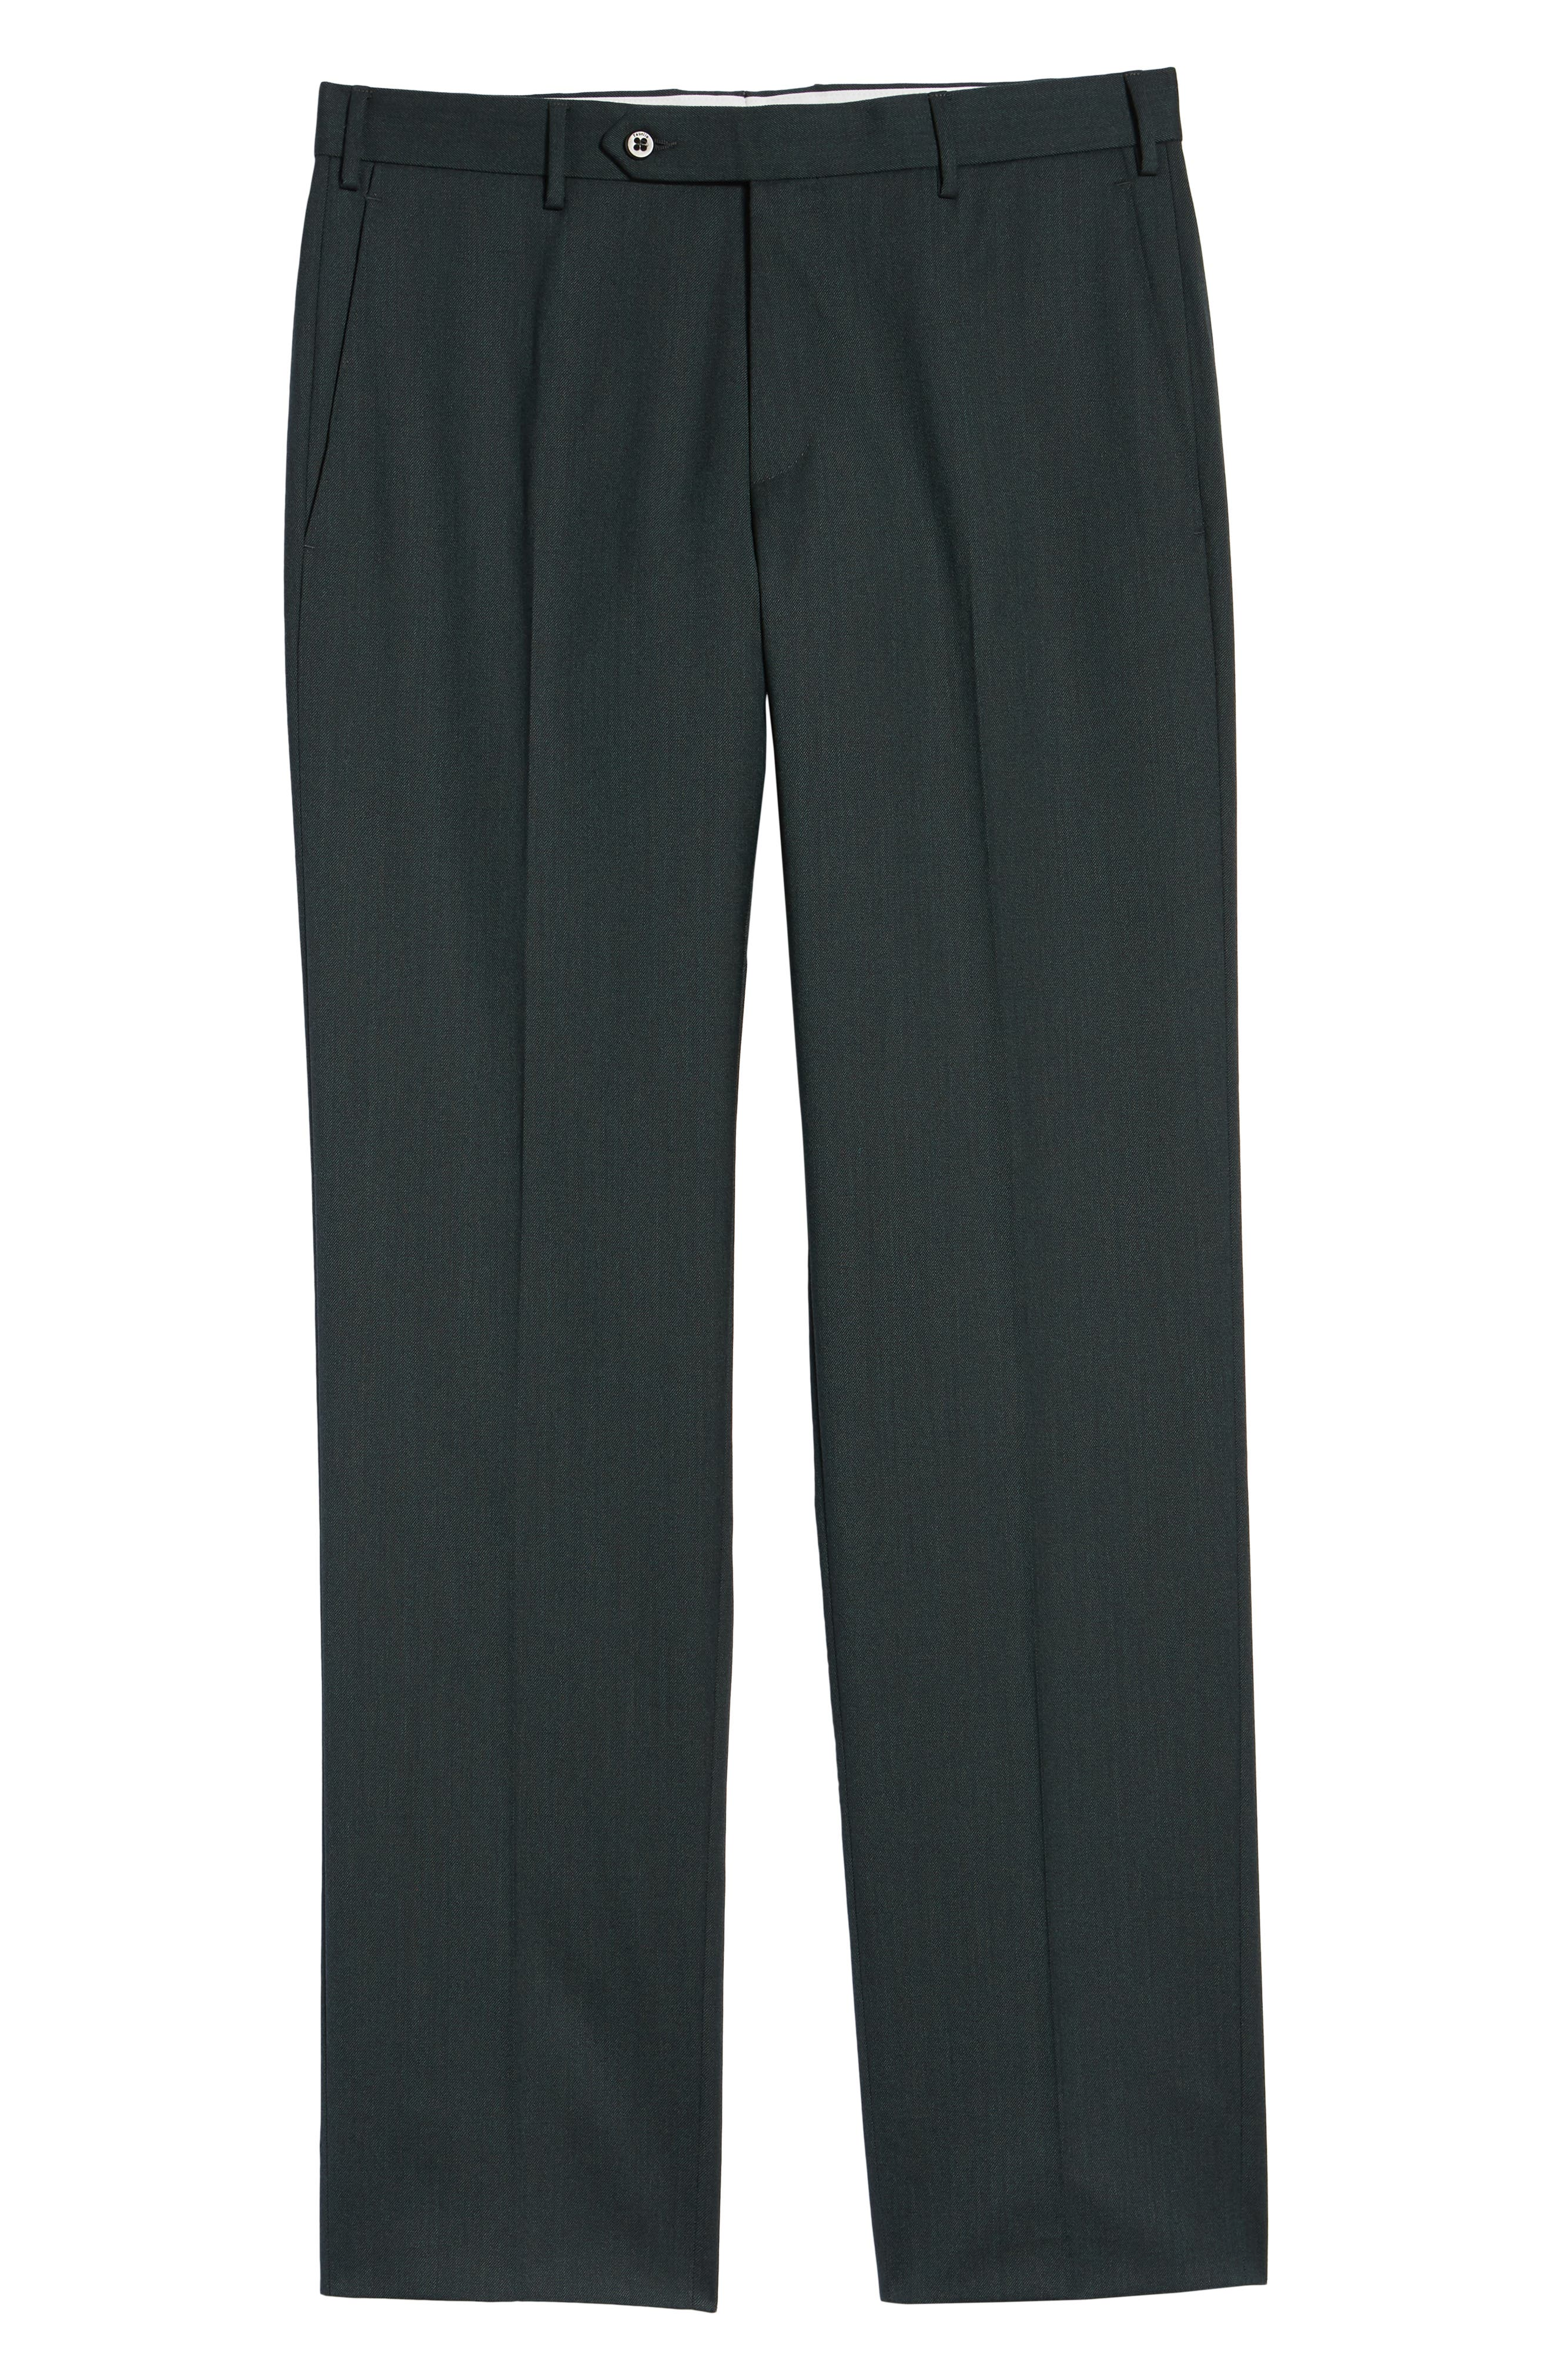 Parker Flat Front Stretch Twill Wool Trousers,                             Alternate thumbnail 6, color,                             OLIVE